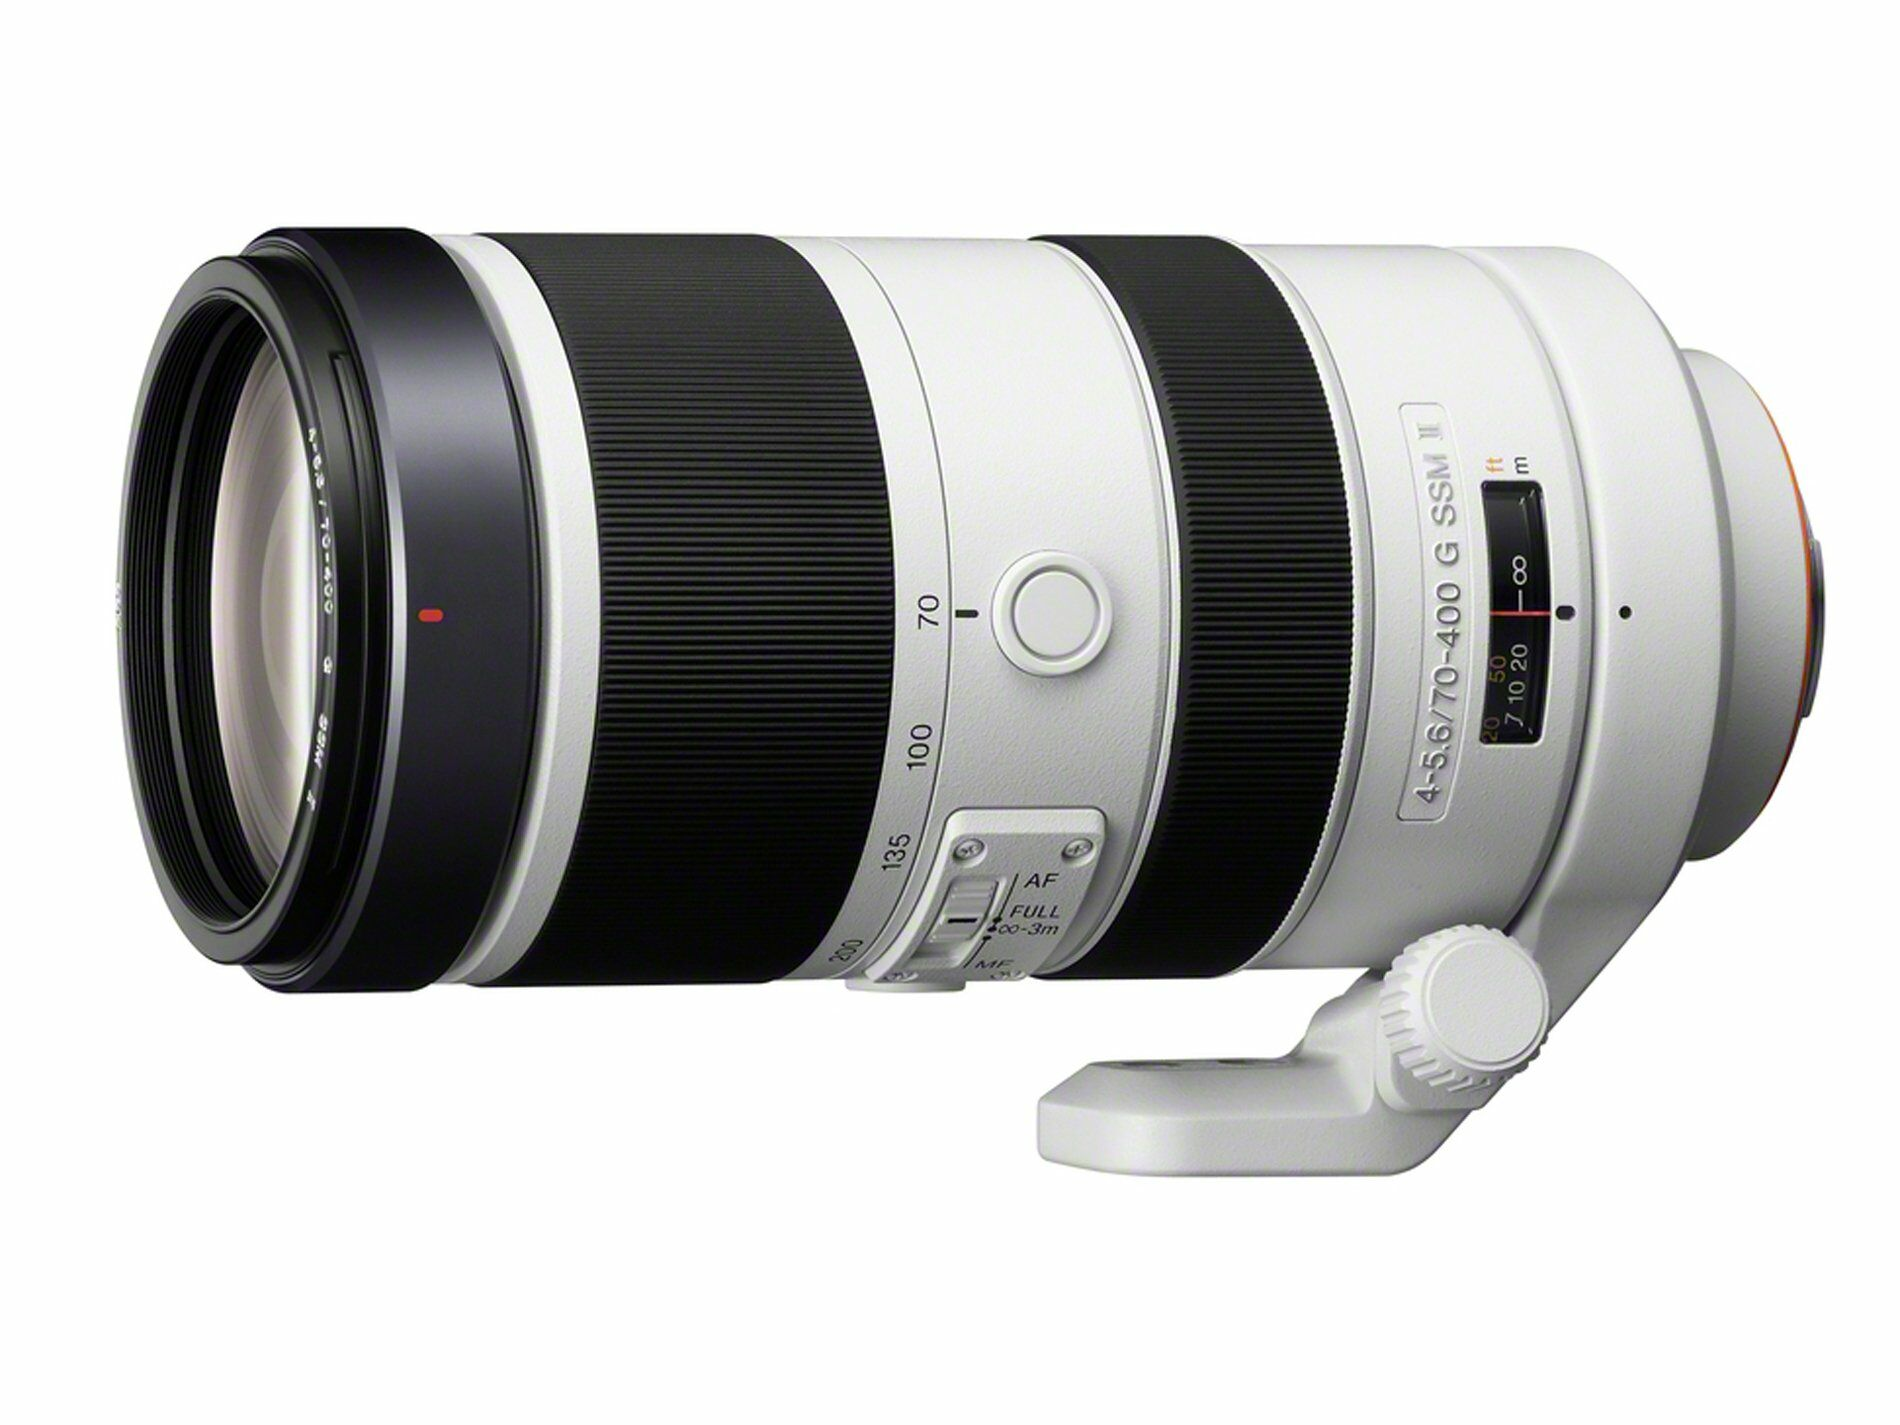 Sony 70-400mm f/4-5,6 G SSM II